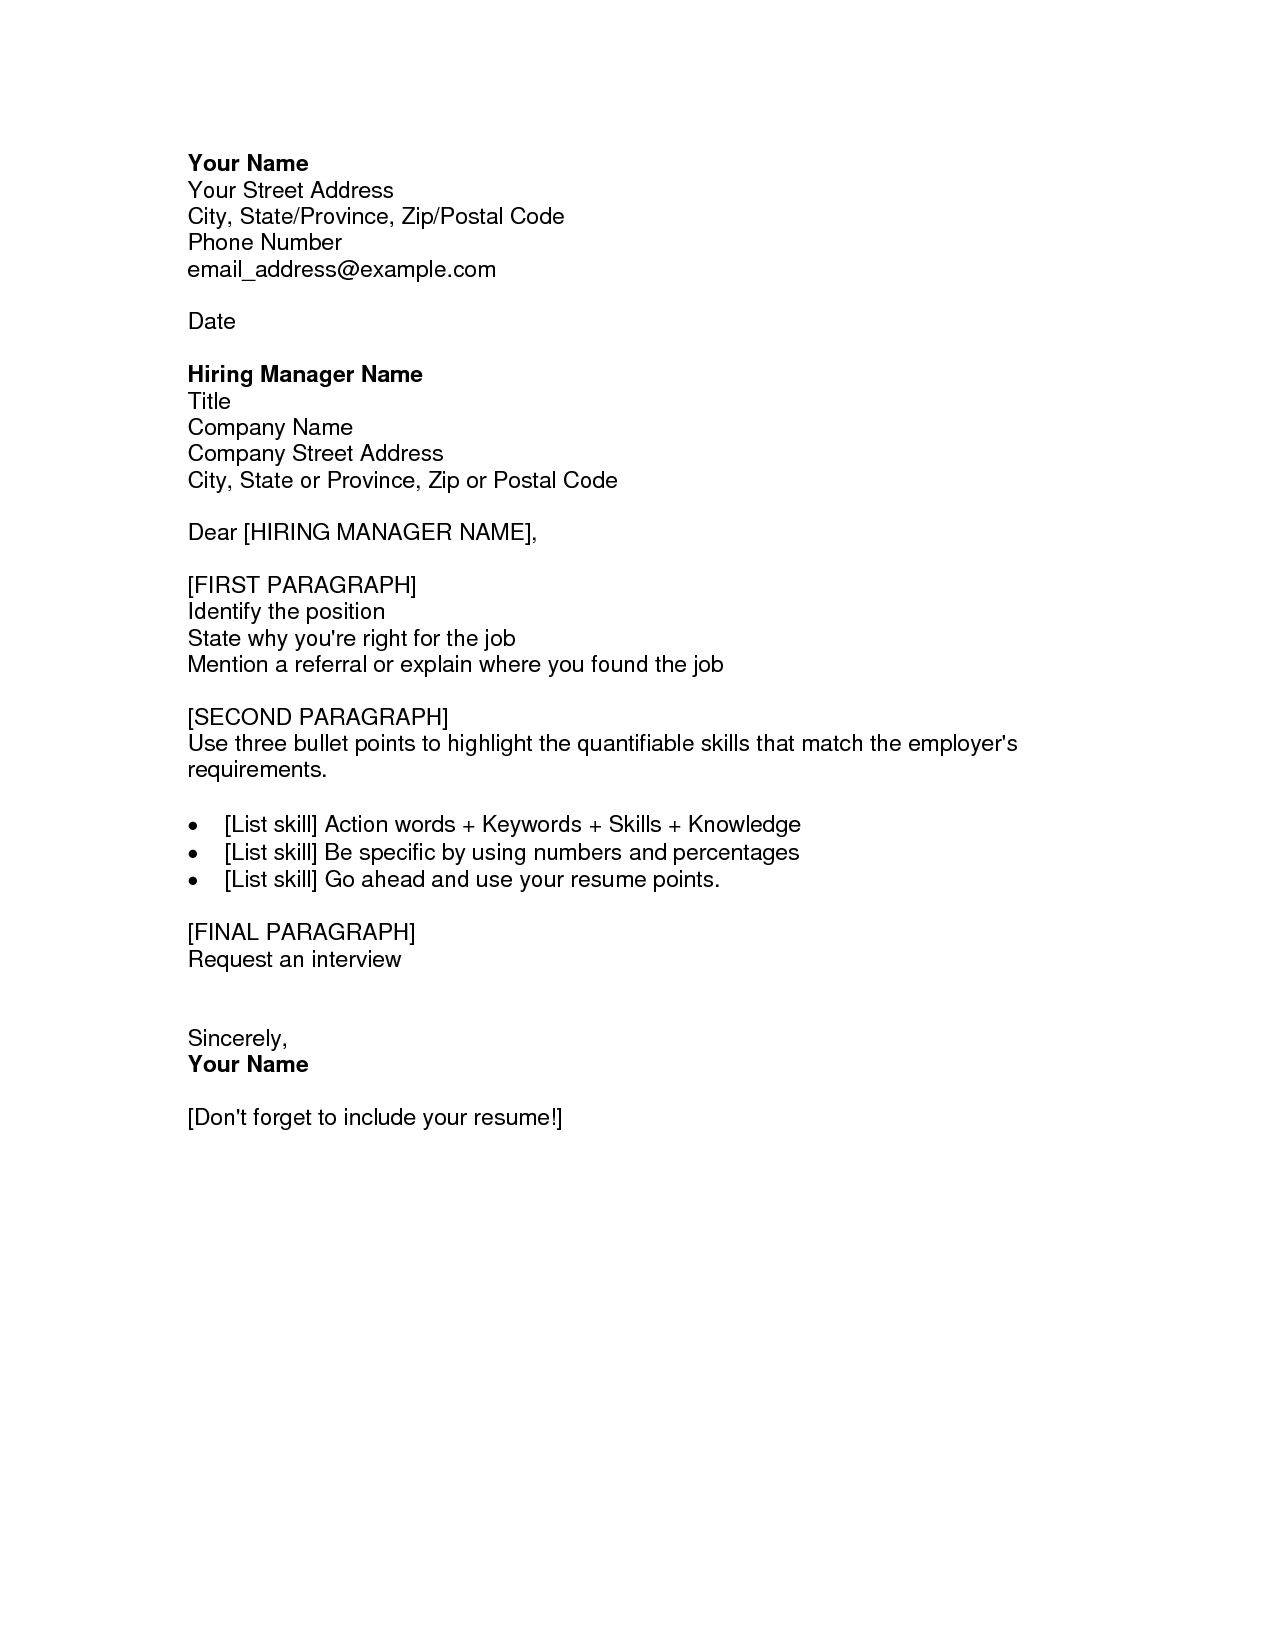 Resume Writing Template Free Resume Cover Letter Format Template How Write Great For